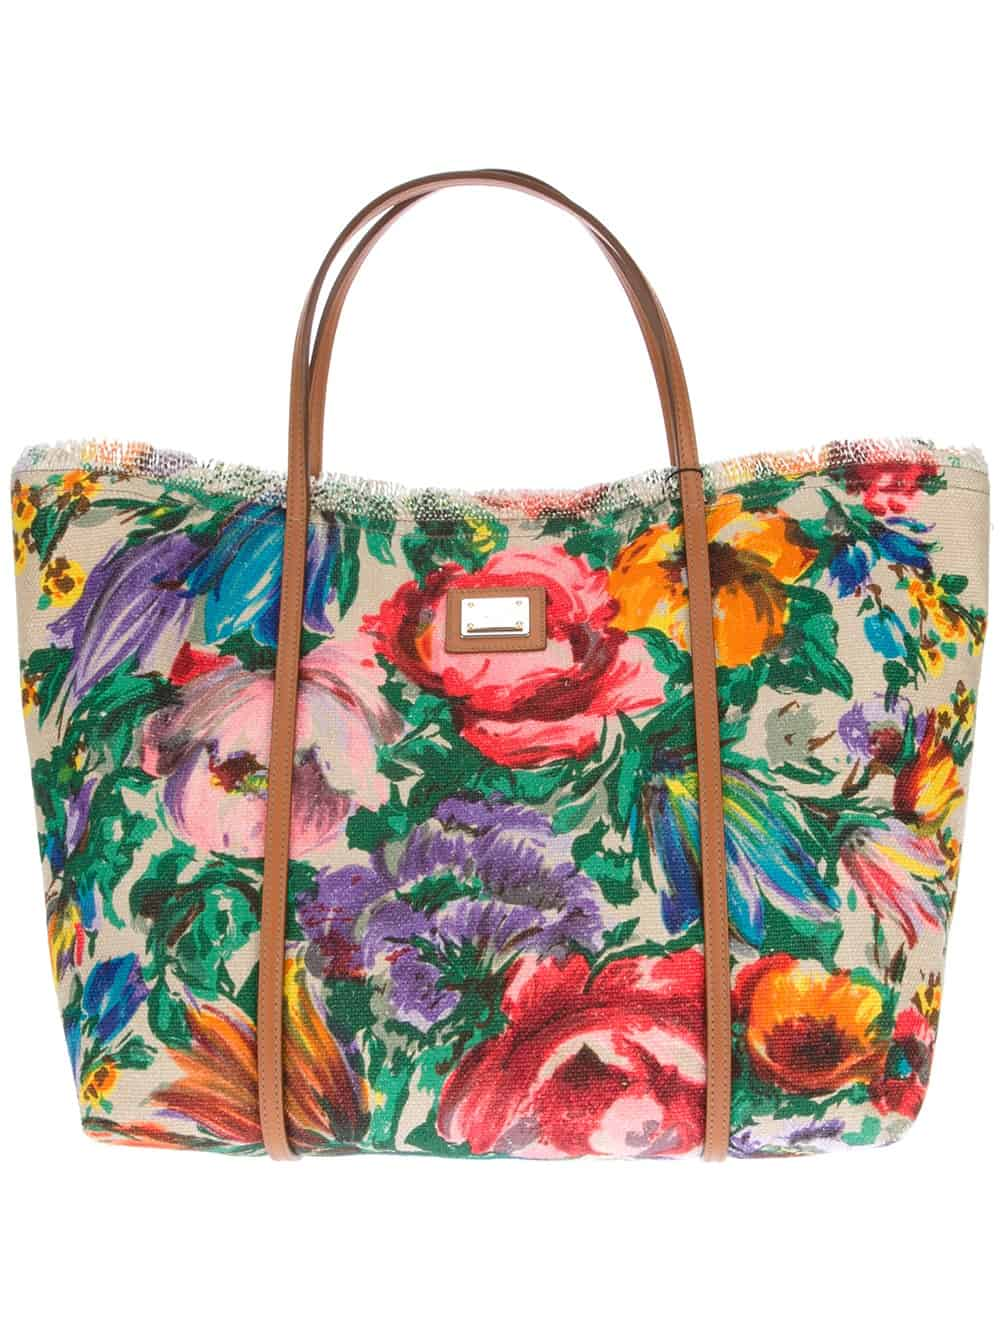 dolce-gabbana-flower-print-bag